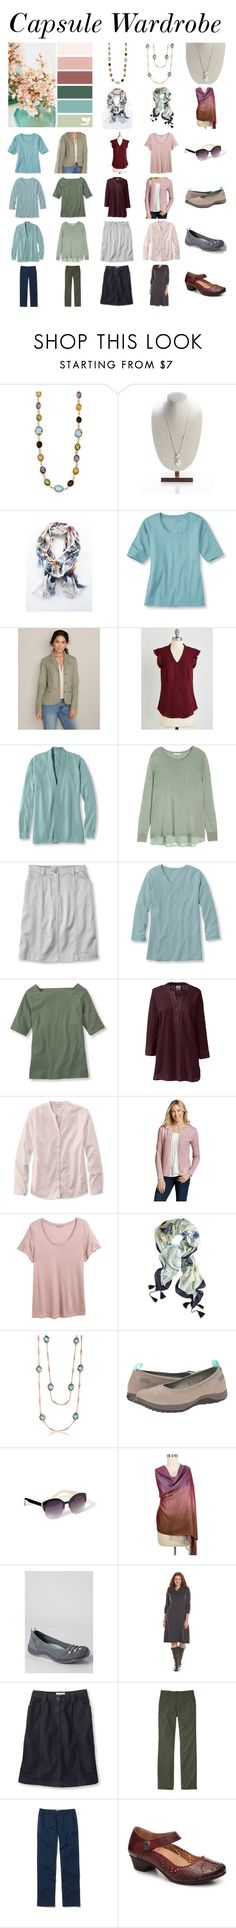 """""""Capsule Wardrobe - plus size"""" by mary-wg on Polyvore featuring Eddie Bauer, Myrtlewood, H&M, L.L.Bean, Lands' End, Chico's, Rockport, Old Navy, NOVICA and women's clothing"""